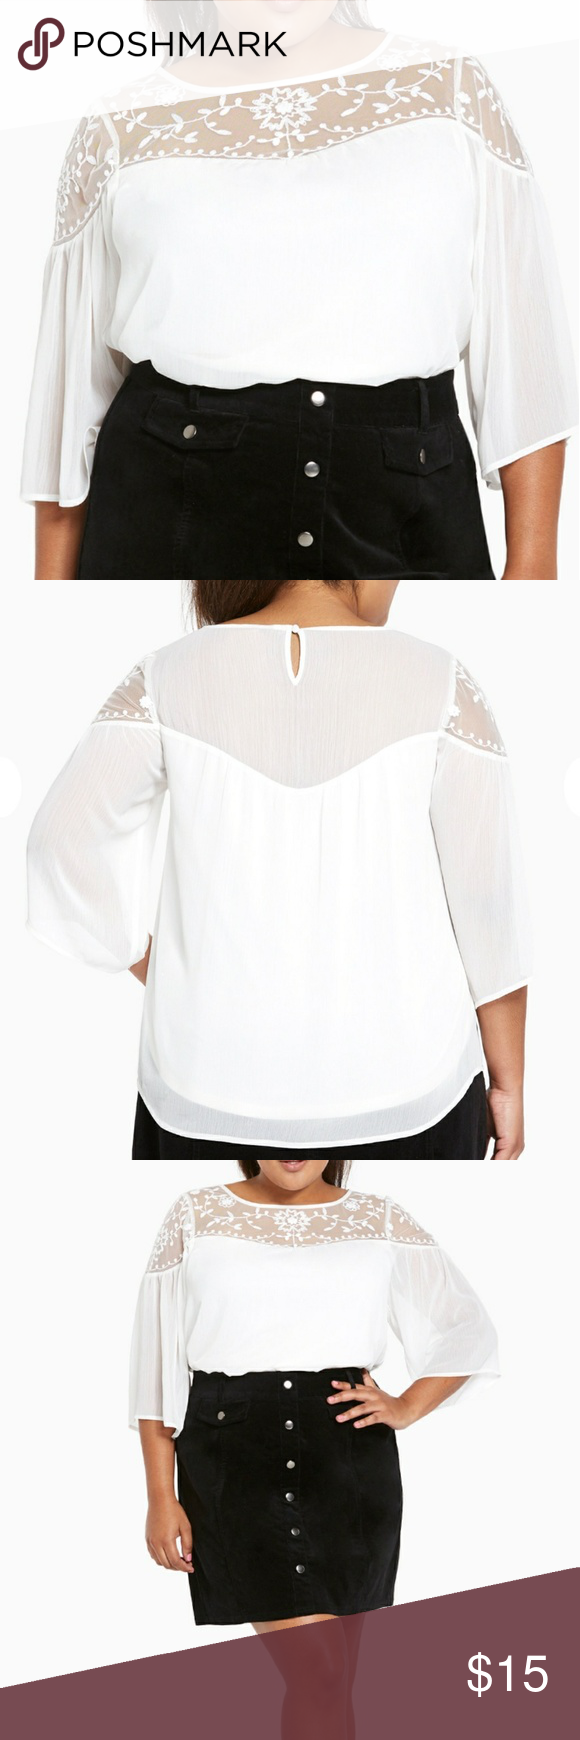 Torrid chiffon lace insert top They say romance is dead, but we think our #feelings for this top prove otherwise. An ivory chiffon body sports a peasant silhouette with bell sleeves. An embroidered lace inset shows off hints of skin; as if we weren't lovestruck enough. torrid Tops Blouses